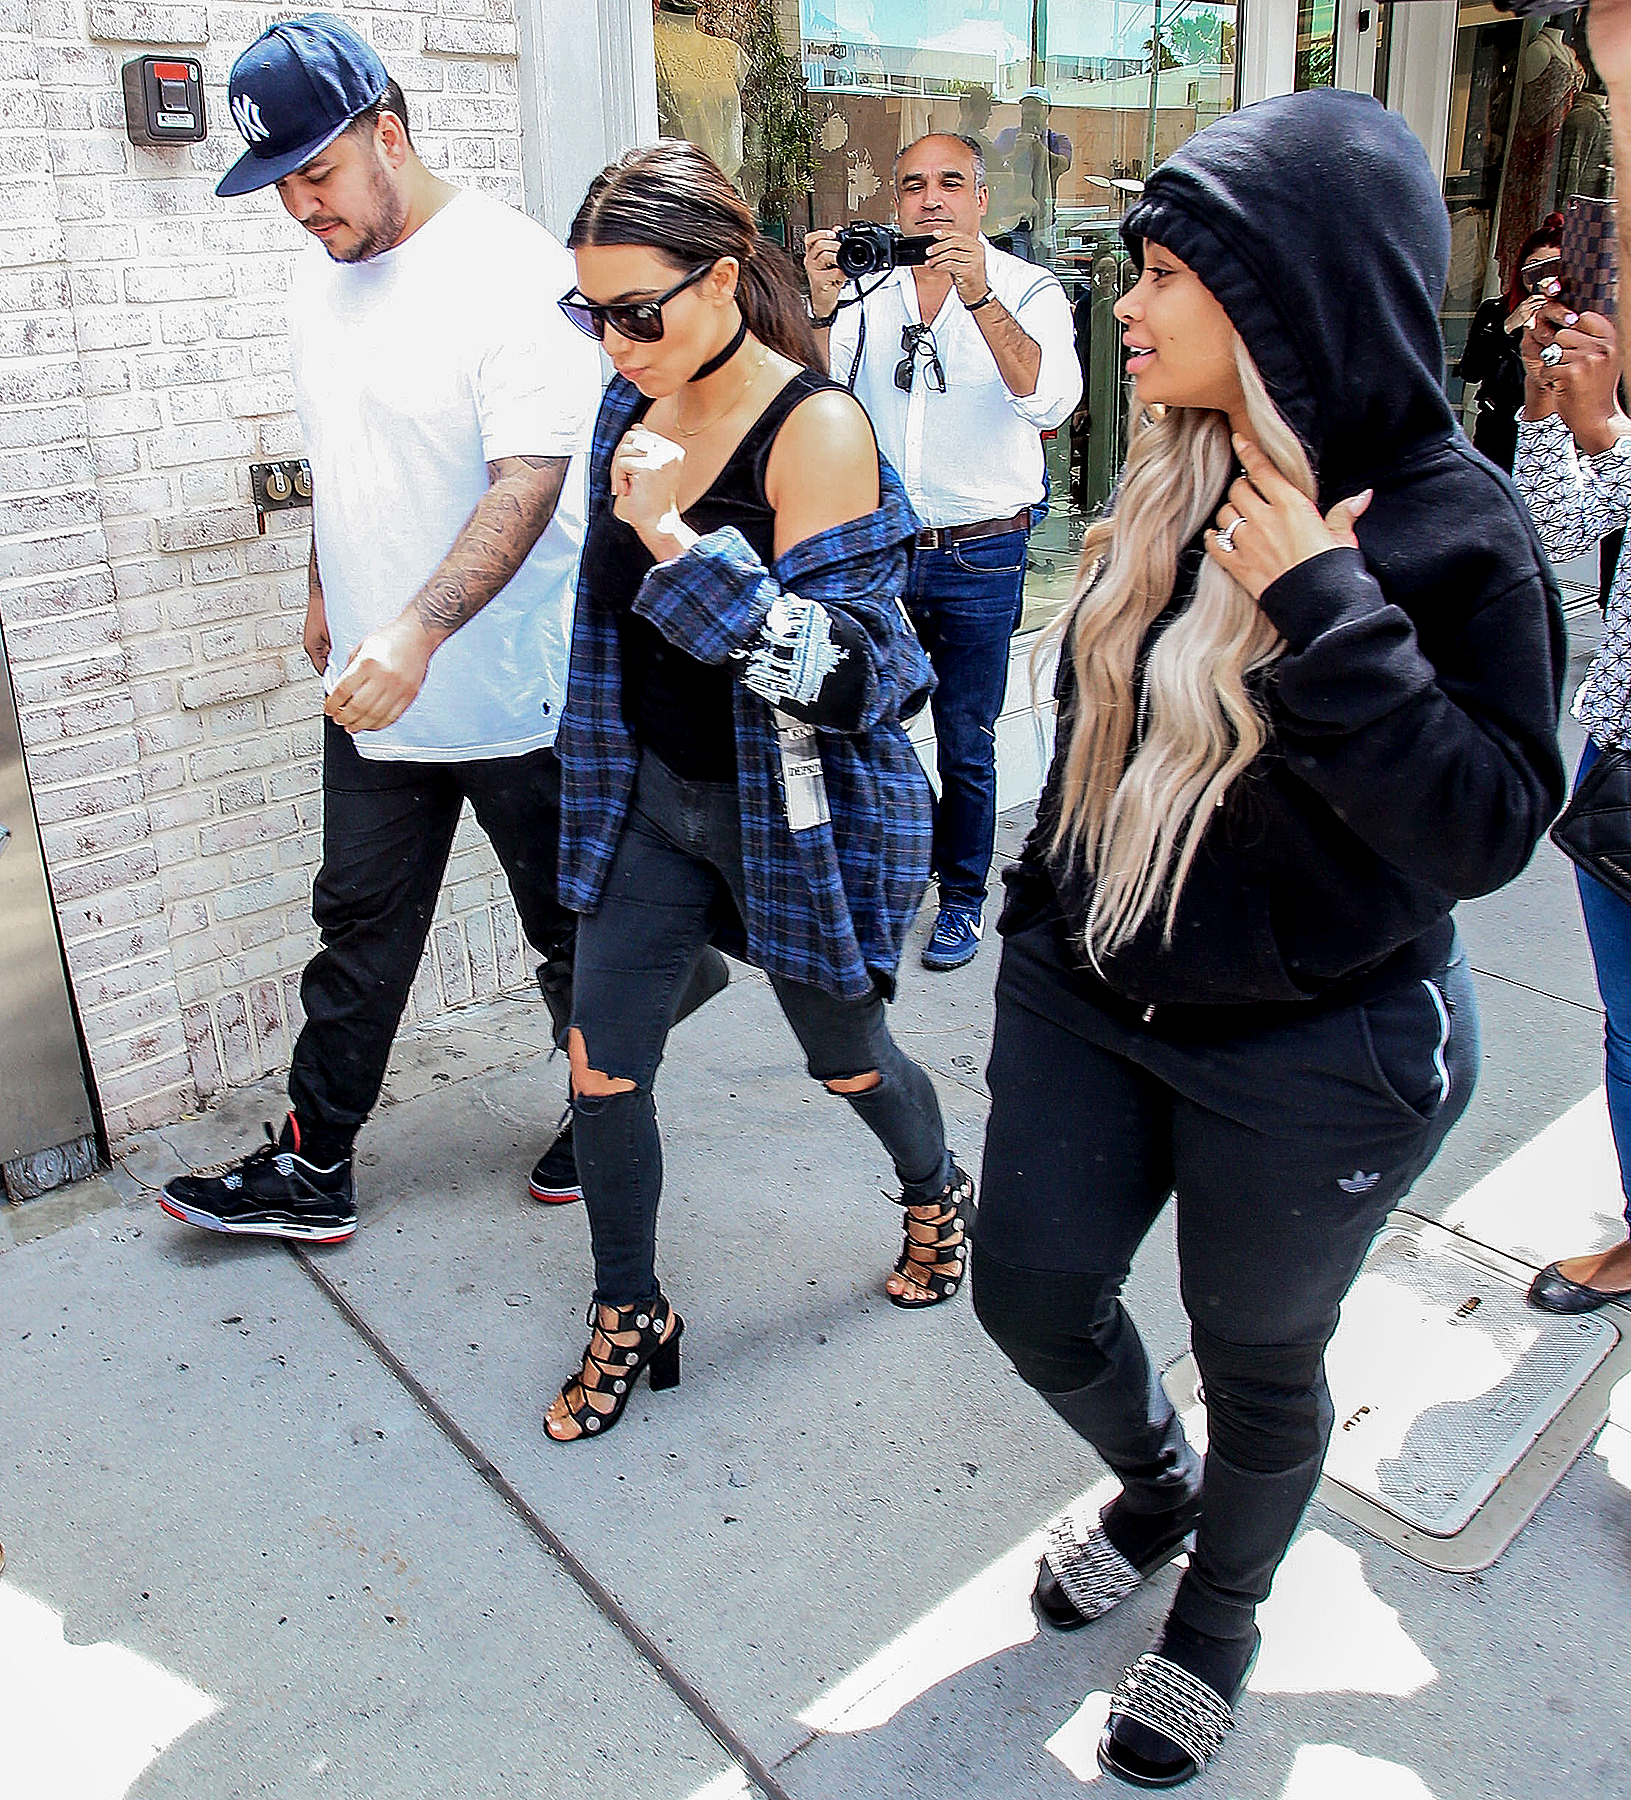 Kim Kardashian, Rob Kardashian, and Blac Chyna are seen on April 26, 2016 in Los Angeles, California.